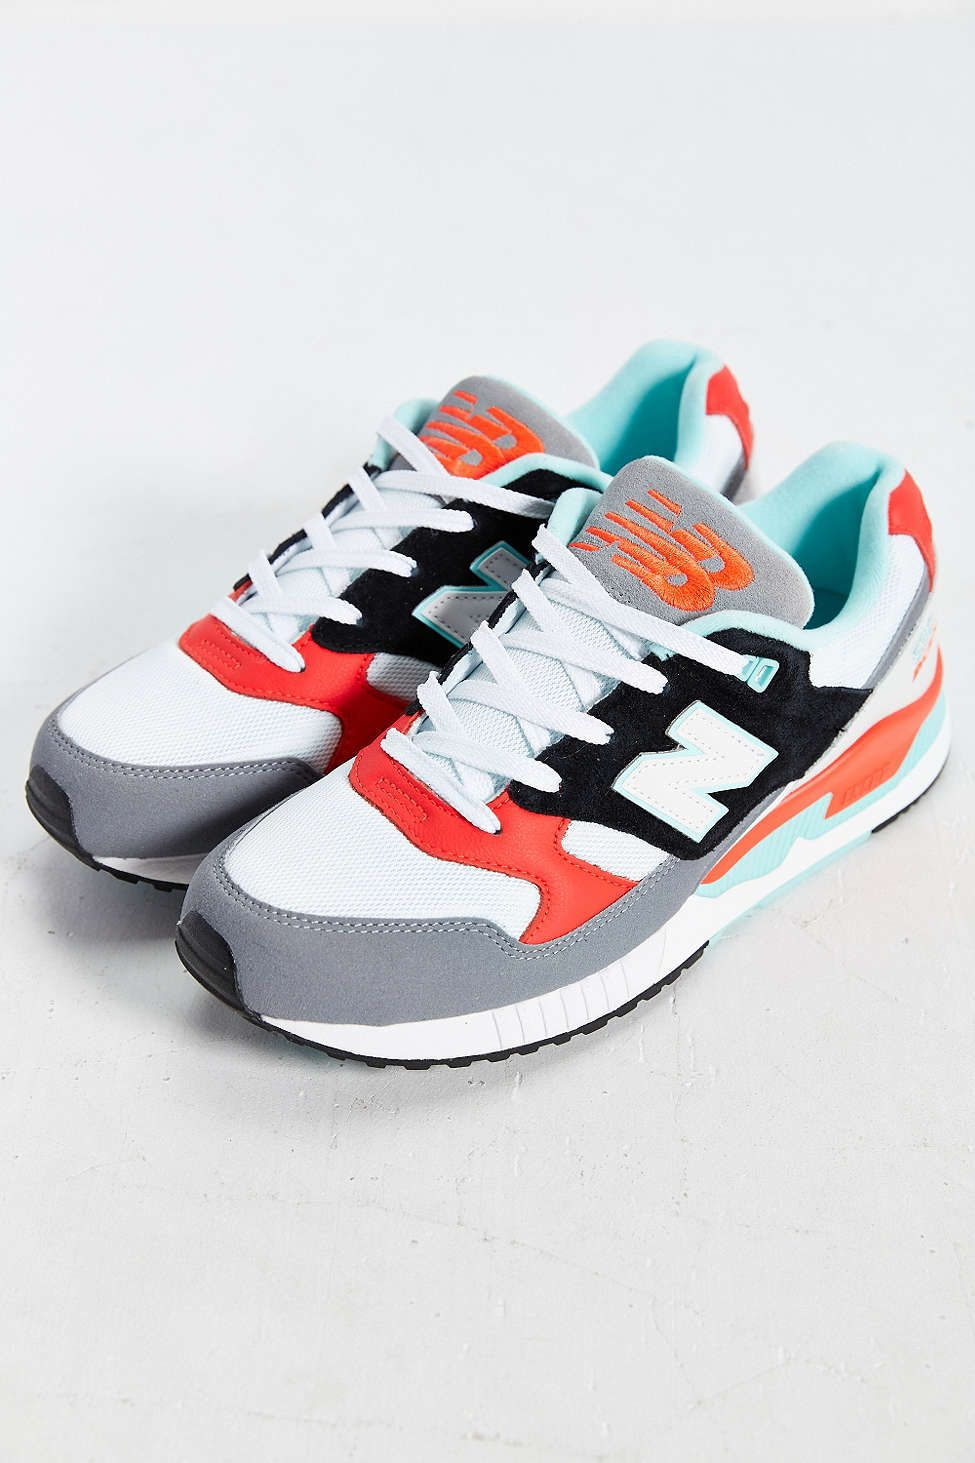 New Balance 530 Zapatillas de correr